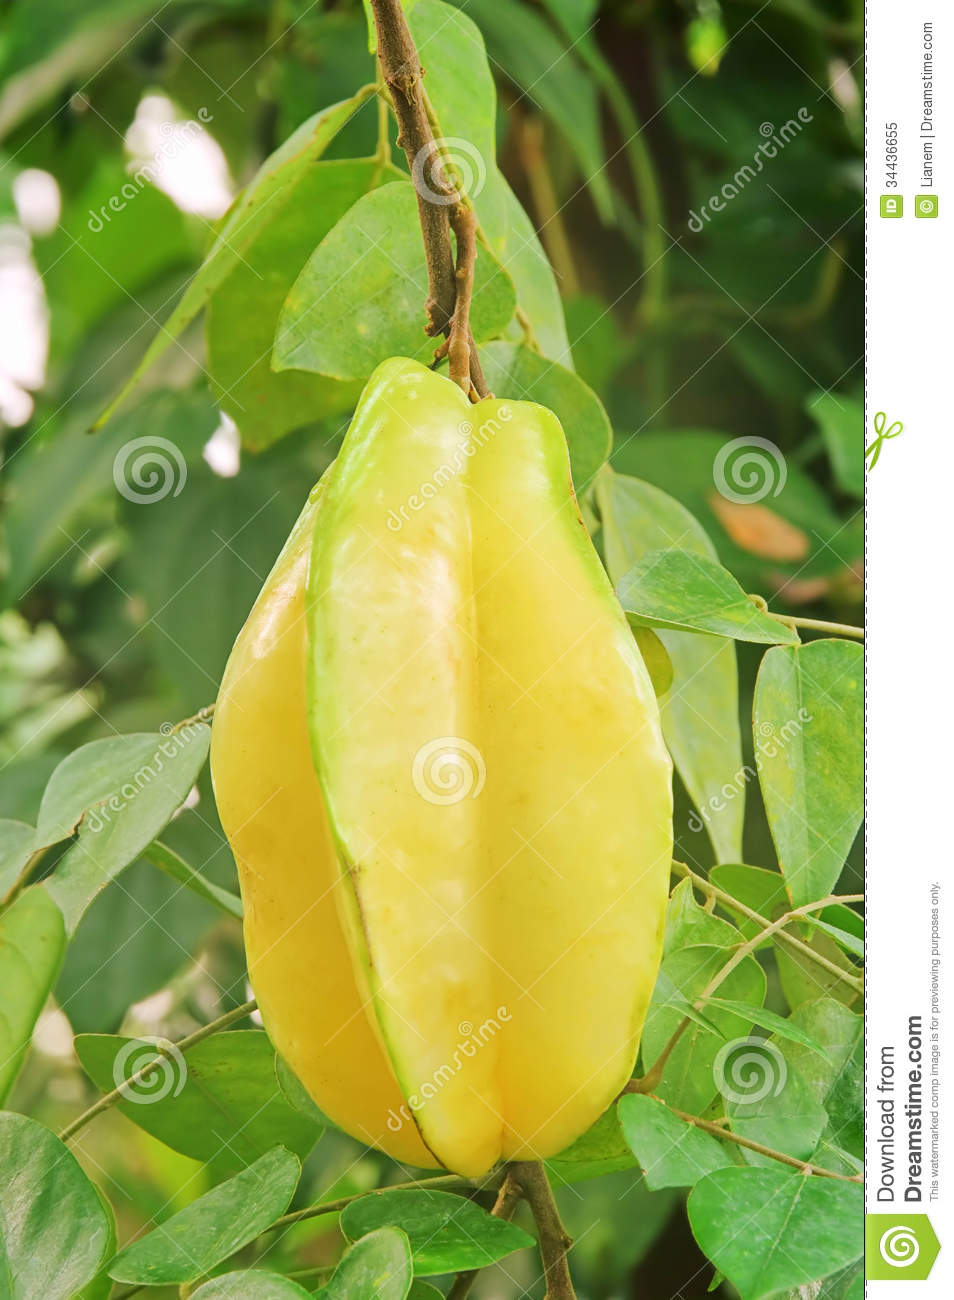 how to eat star fruit video